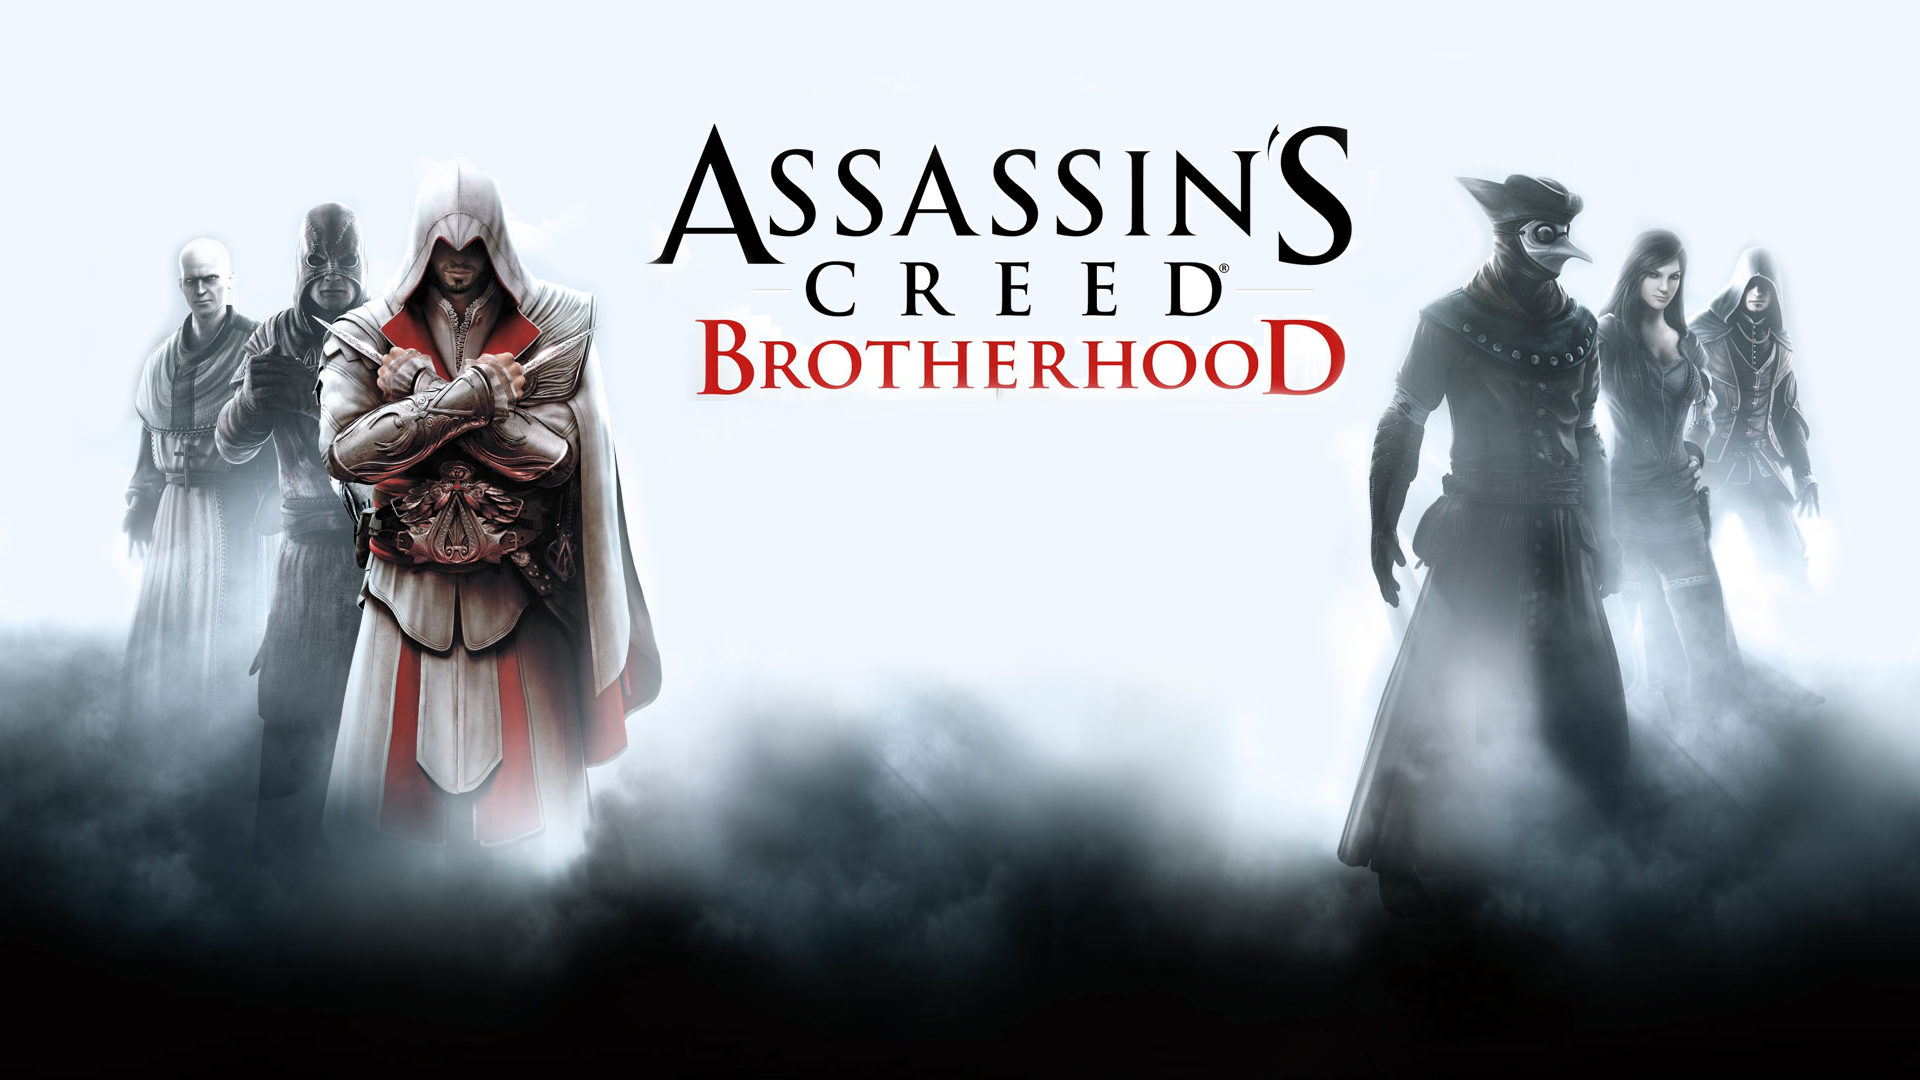 Free Download Assassins Creed Brotherhood 1080p Wallpapers